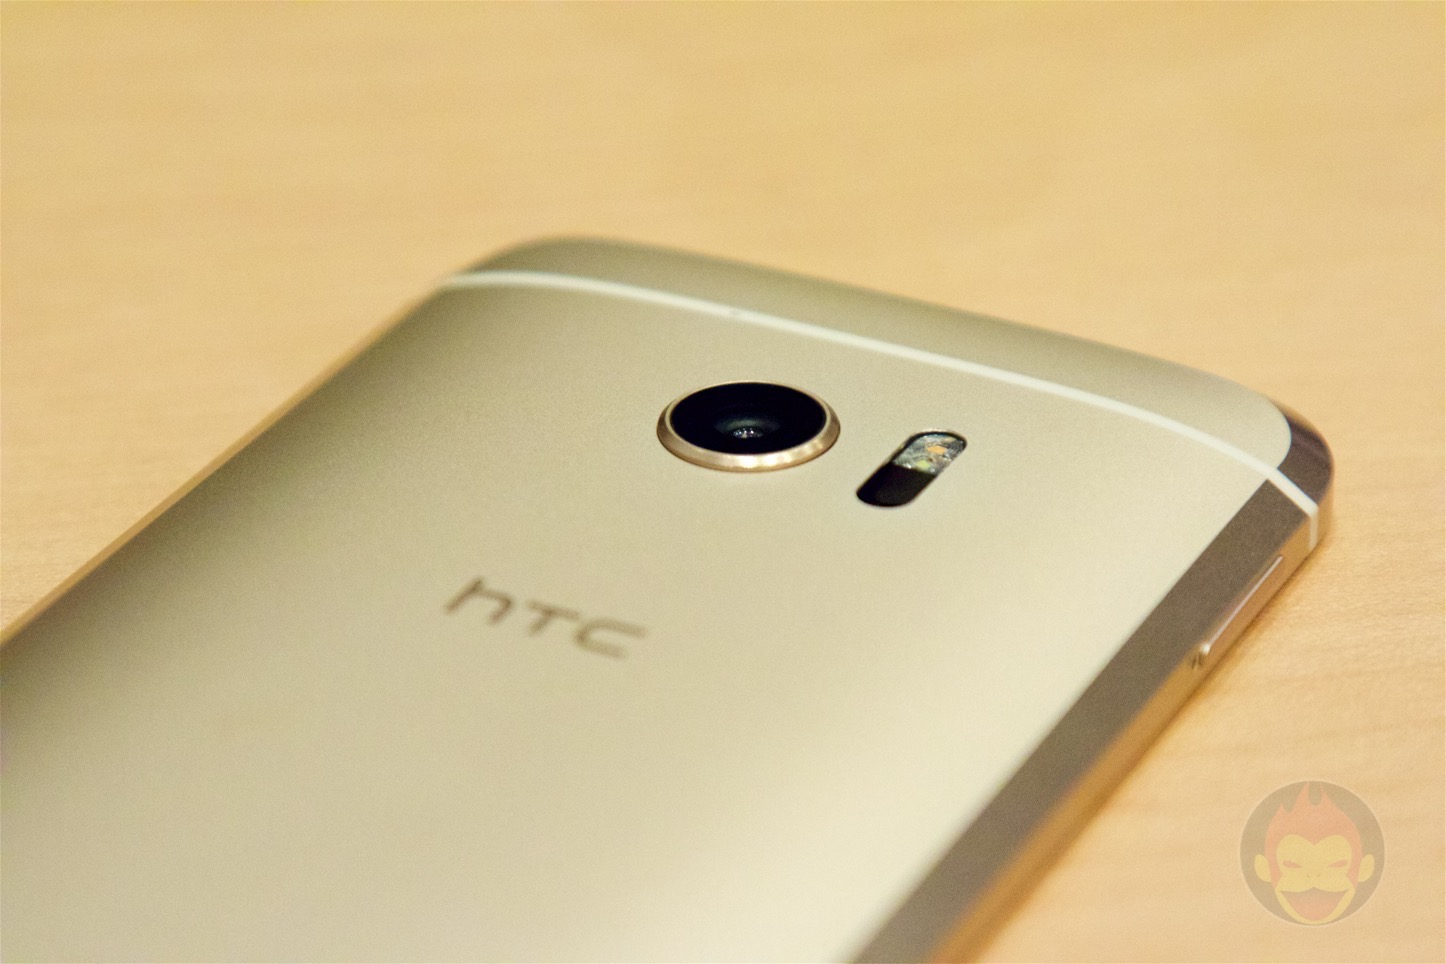 HTC-10-Hands-On-13.jpg